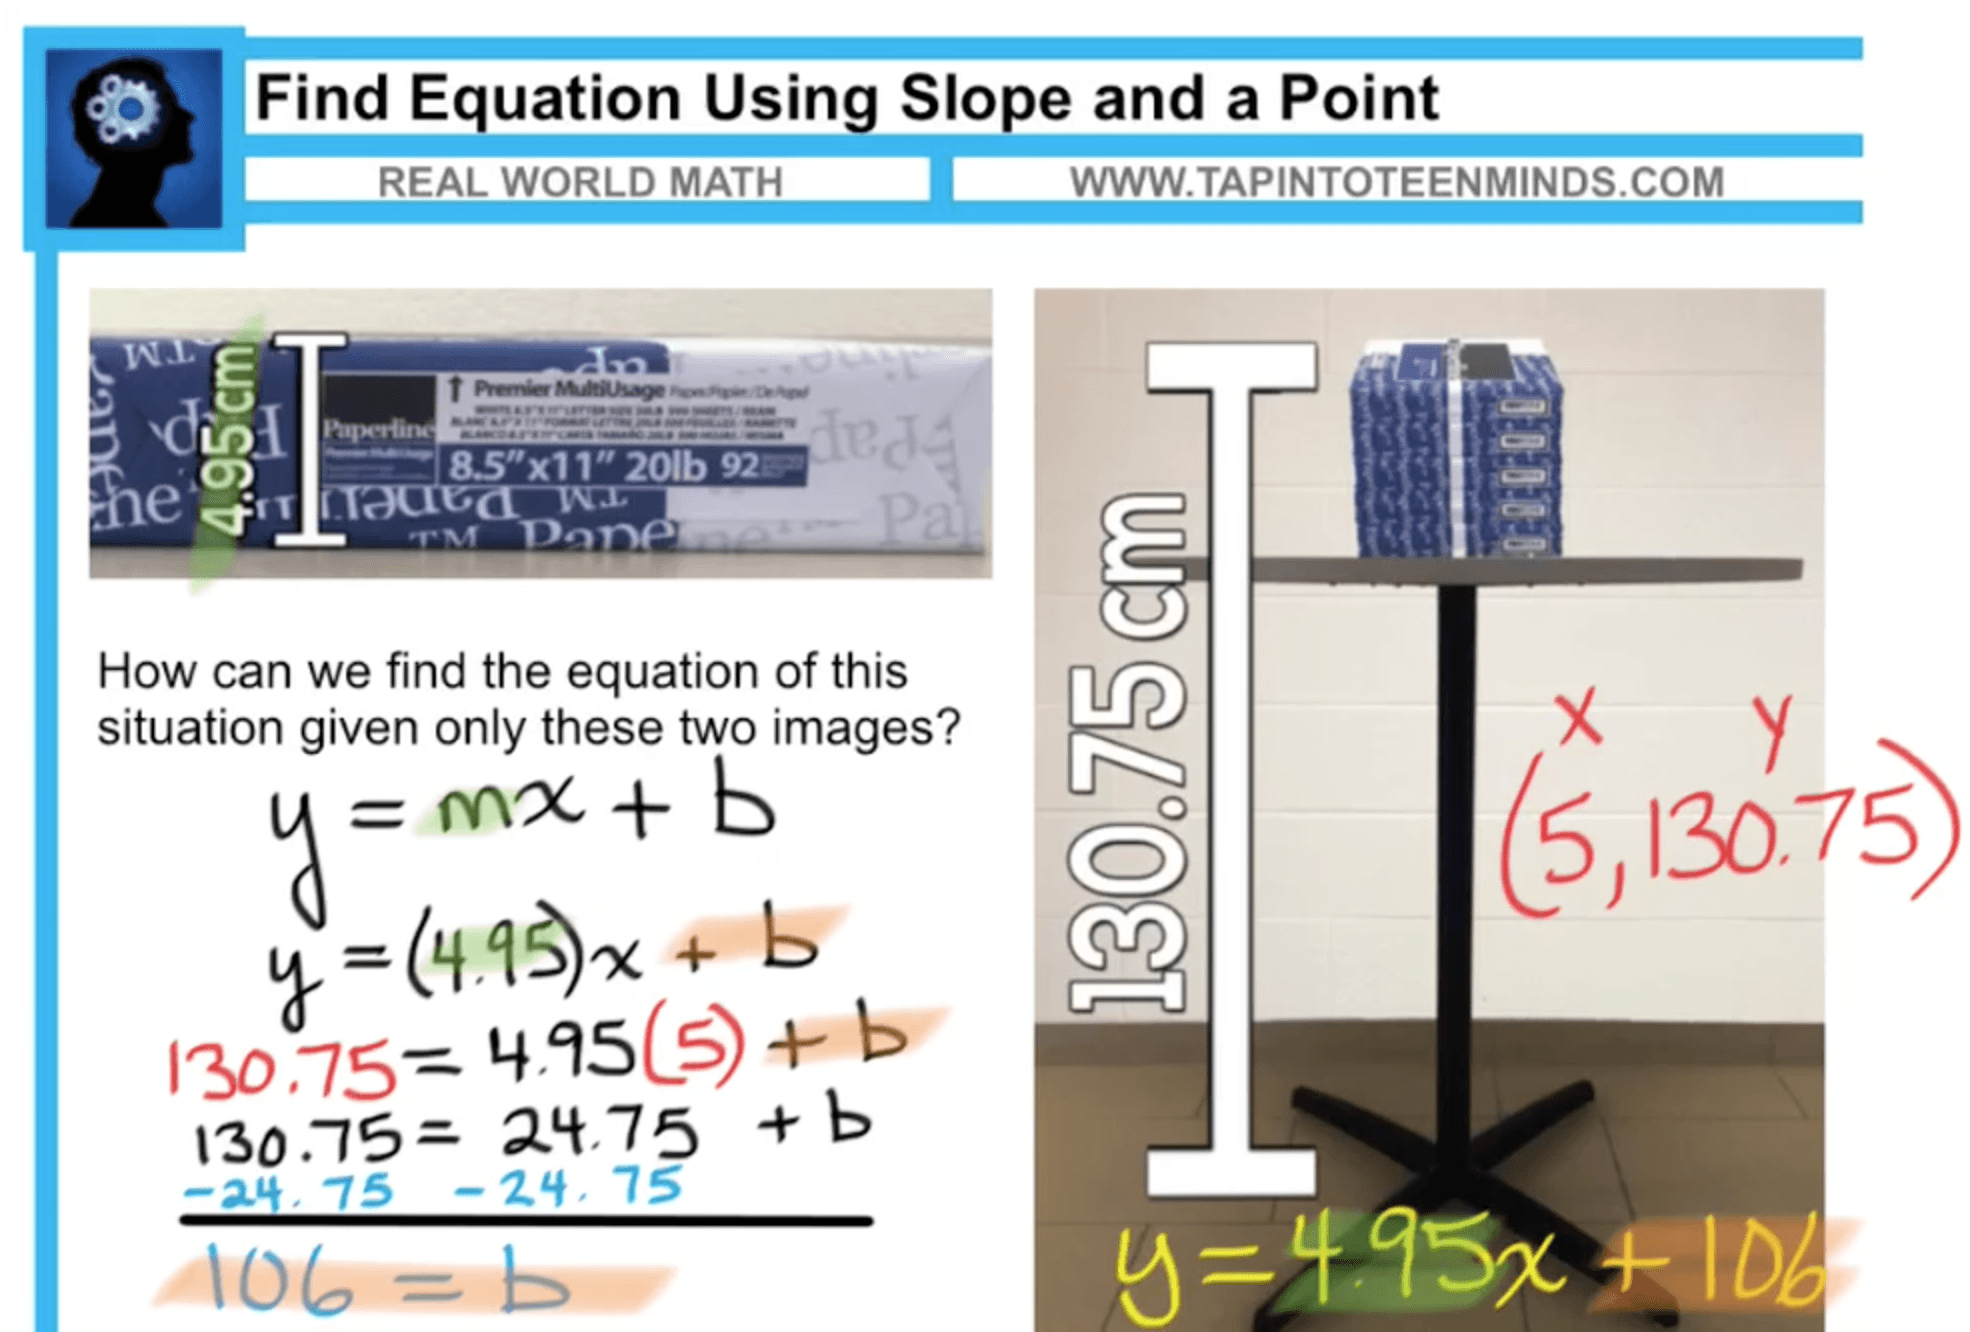 Stacking Paper 3 Act Math Sequel Equations Given Slope & Pt How To Find